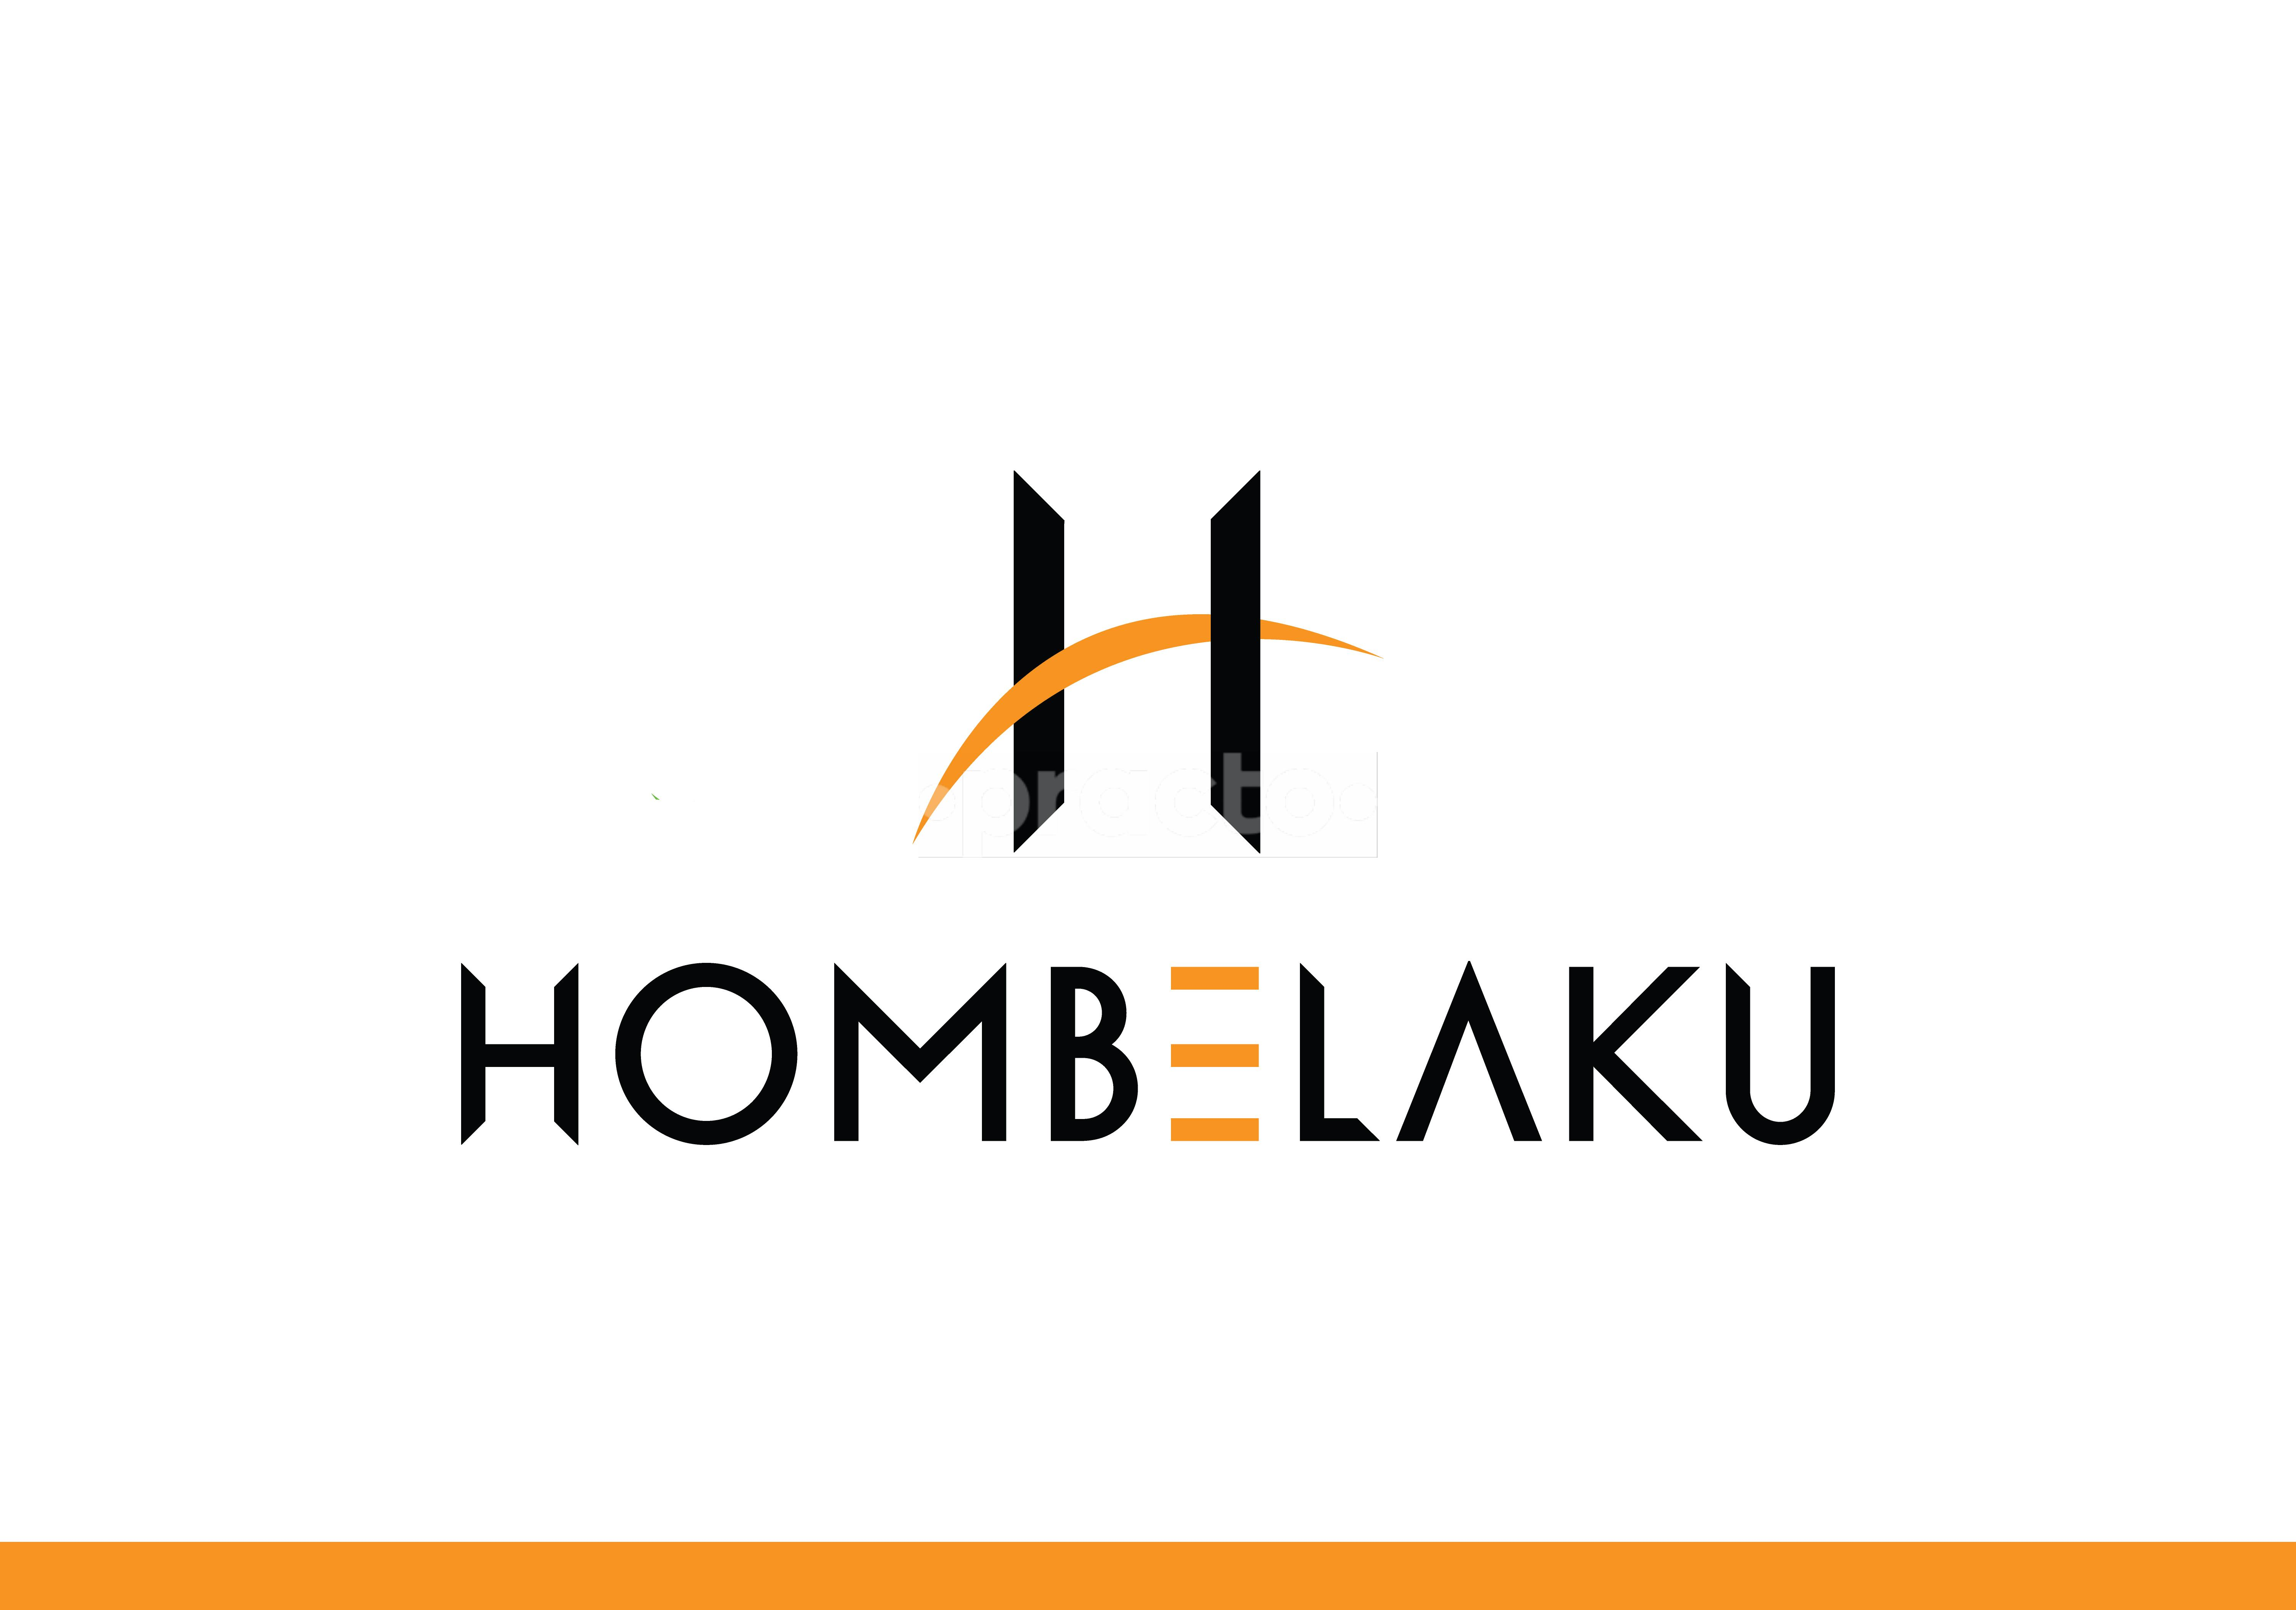 Hombelaku - Relationship & Sexual Wellness Centre